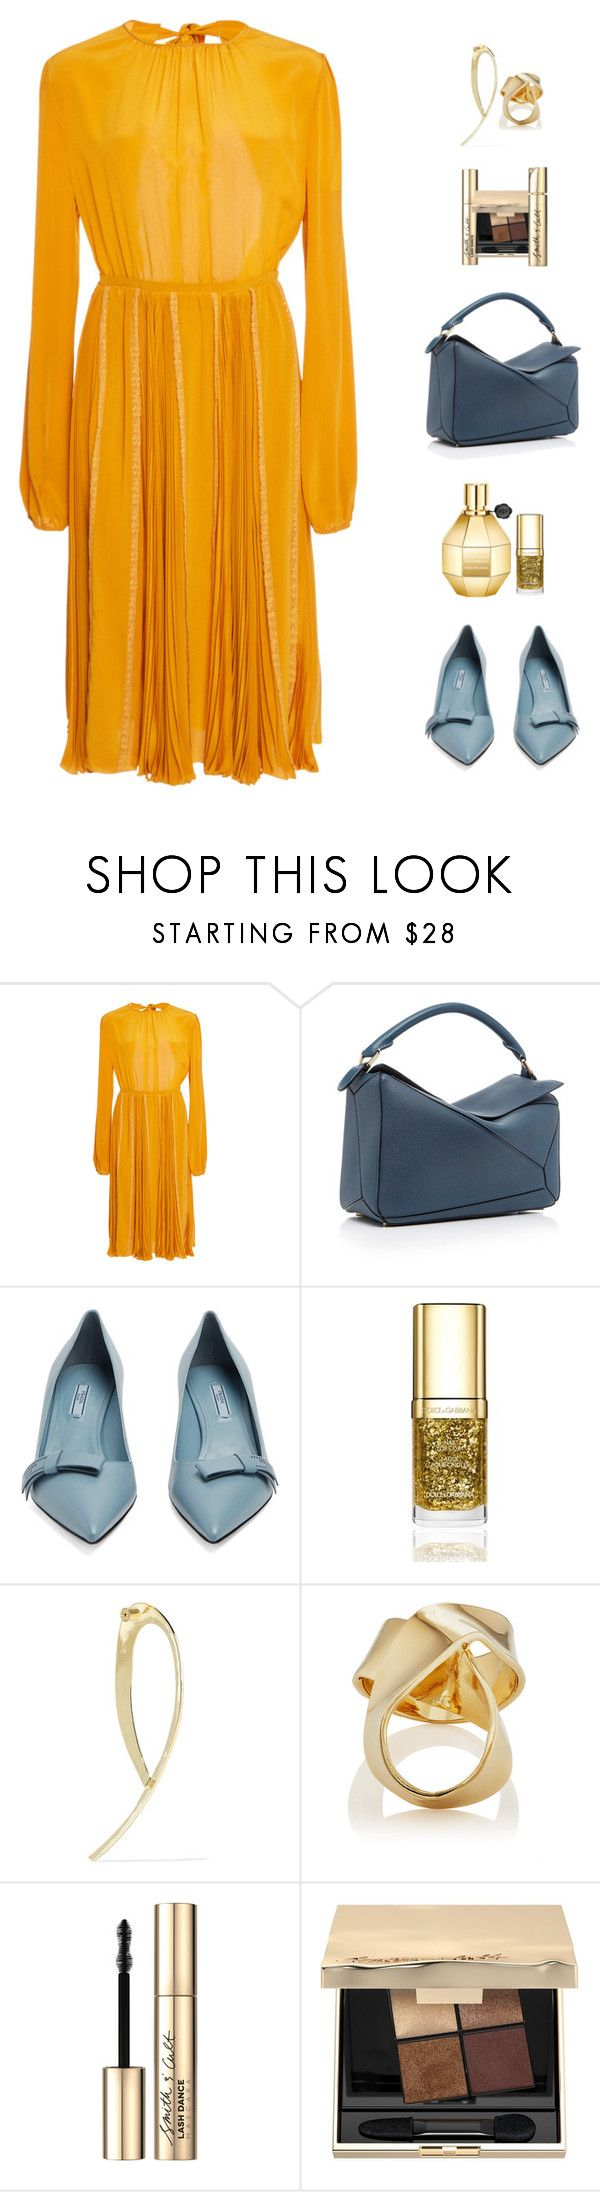 """Monday In Marigold"" by sereneowl ❤ liked on Polyvore featuring Rochas, Loewe, Prada, Dolce&Gabbana, Jennifer Fisher and Smith & Cult"